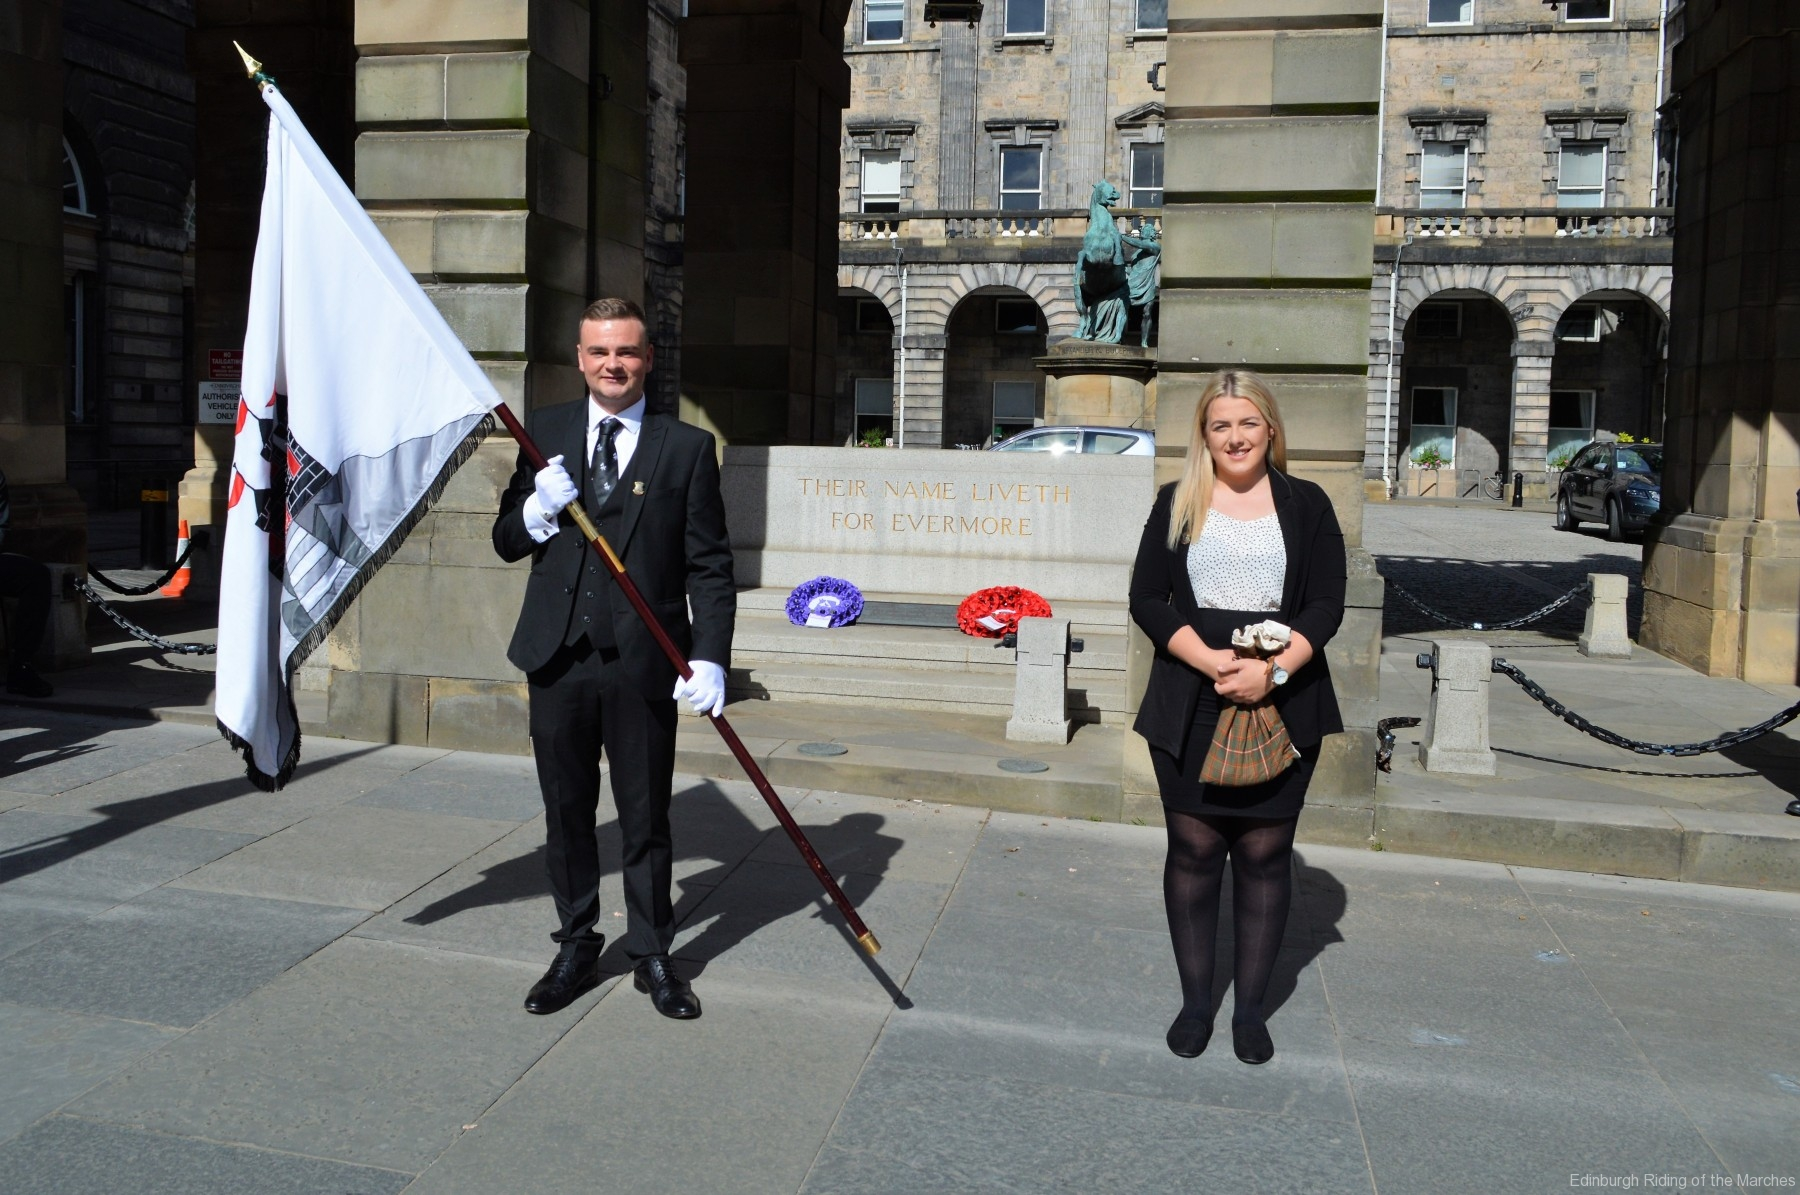 2021 Captain and Lass Elect, Jay Sturgeon and Abbie McDowall following the laying of the wreath at the City Chambers War Memorial